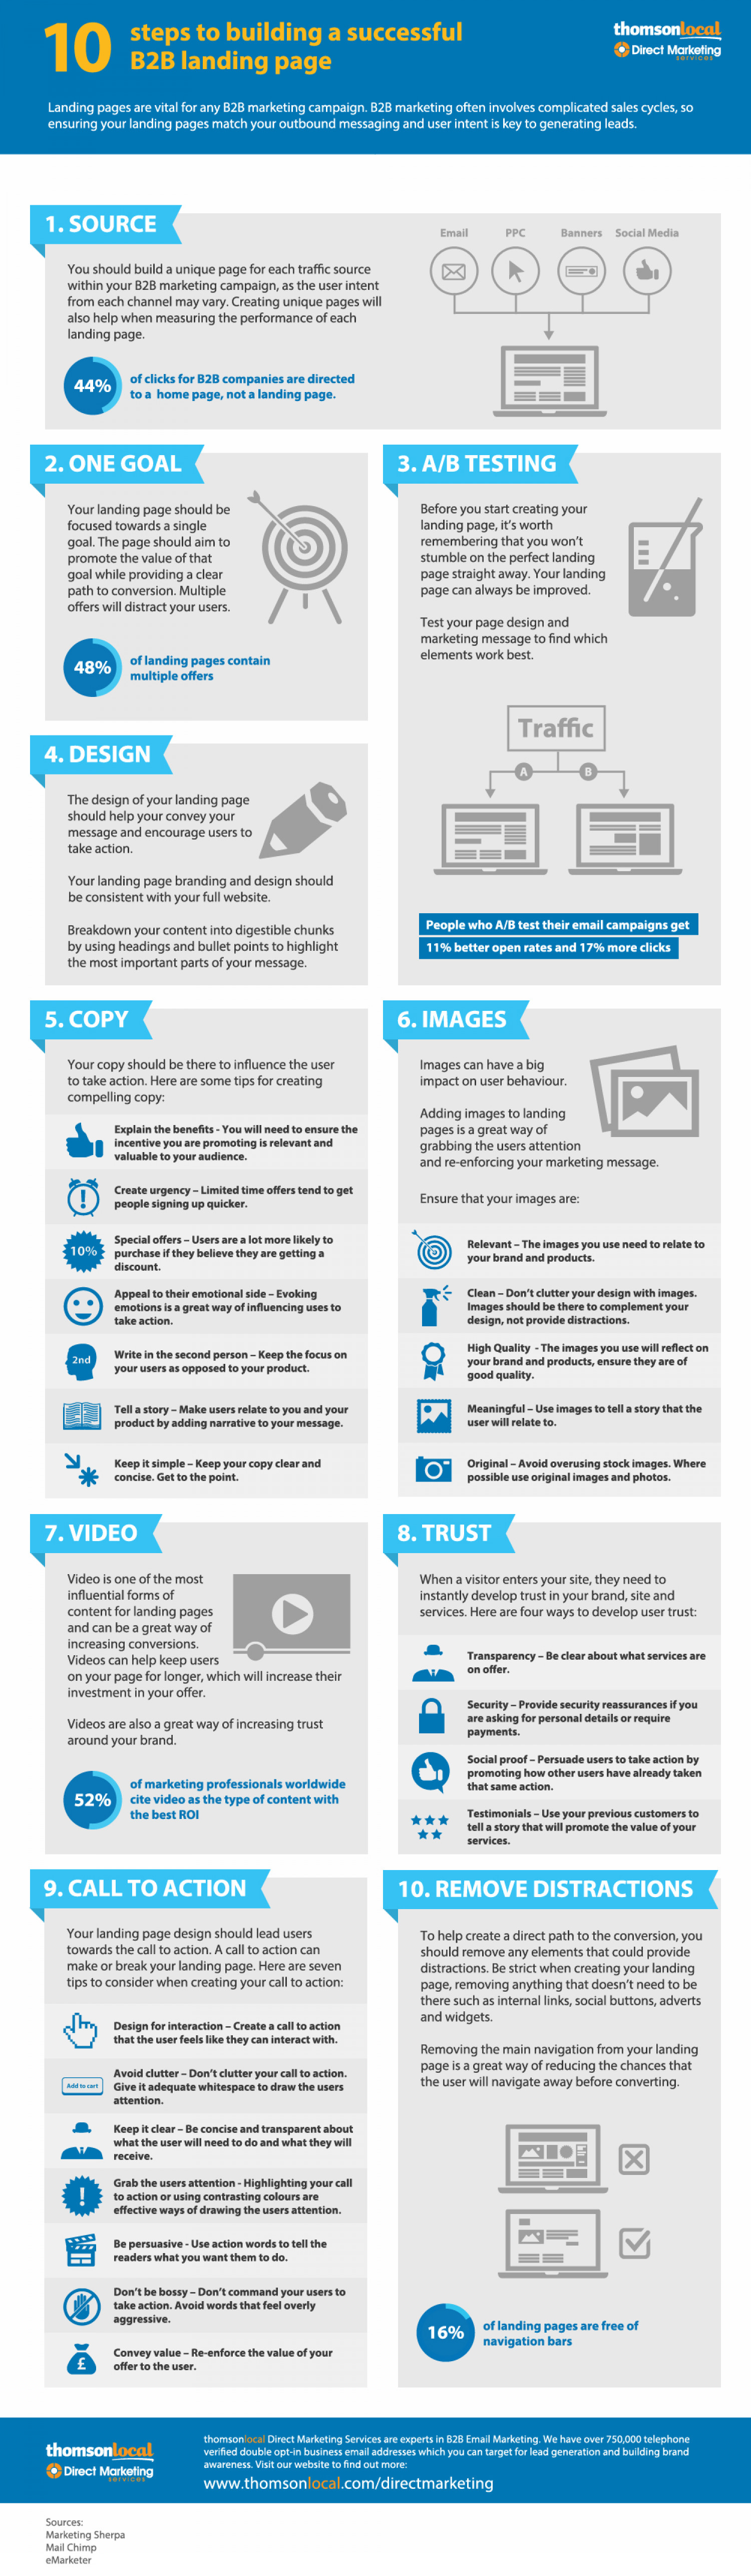 10 steps to building a successful B2B landing page Infographic